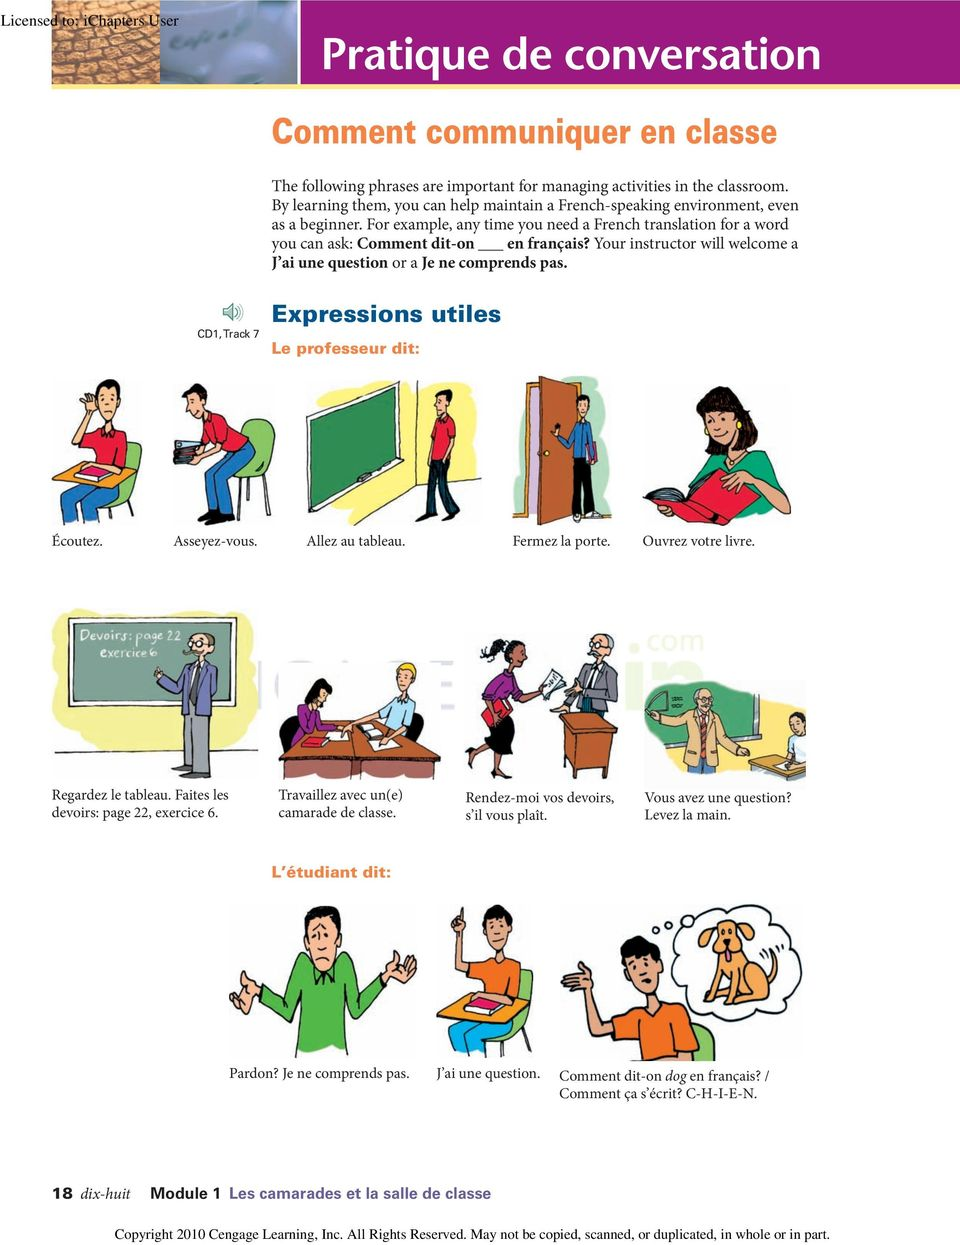 Your instructor will welcome a J ai une question or a Je ne comprends pas. CD1, Track 7 Expressions utiles Le professeur dit: Écoutez. Asseyez-vous. Allez au tableau. Fermez la porte.